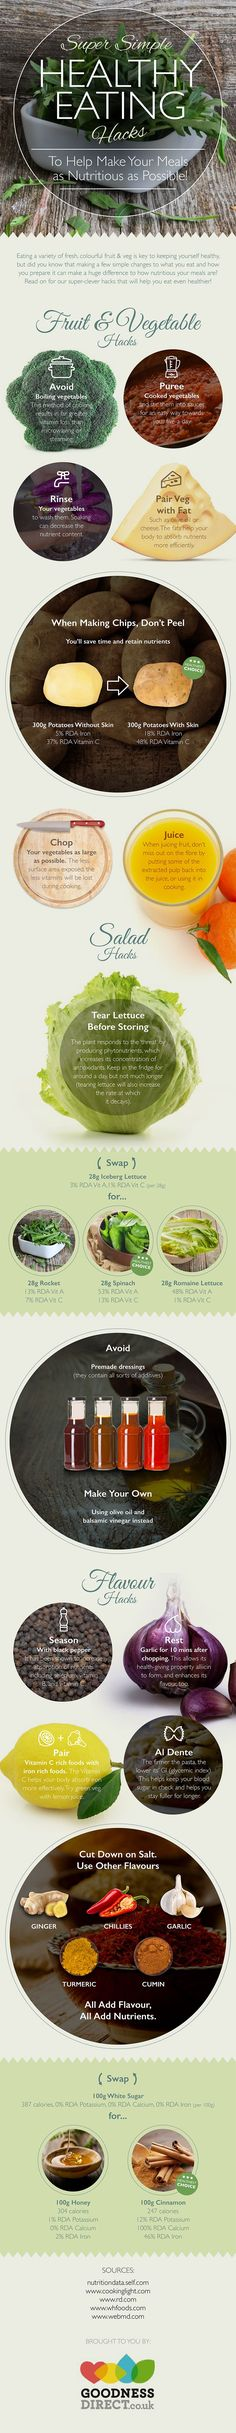 Super Simple Healthy Eating Hacks #infographic #Hacks #Food